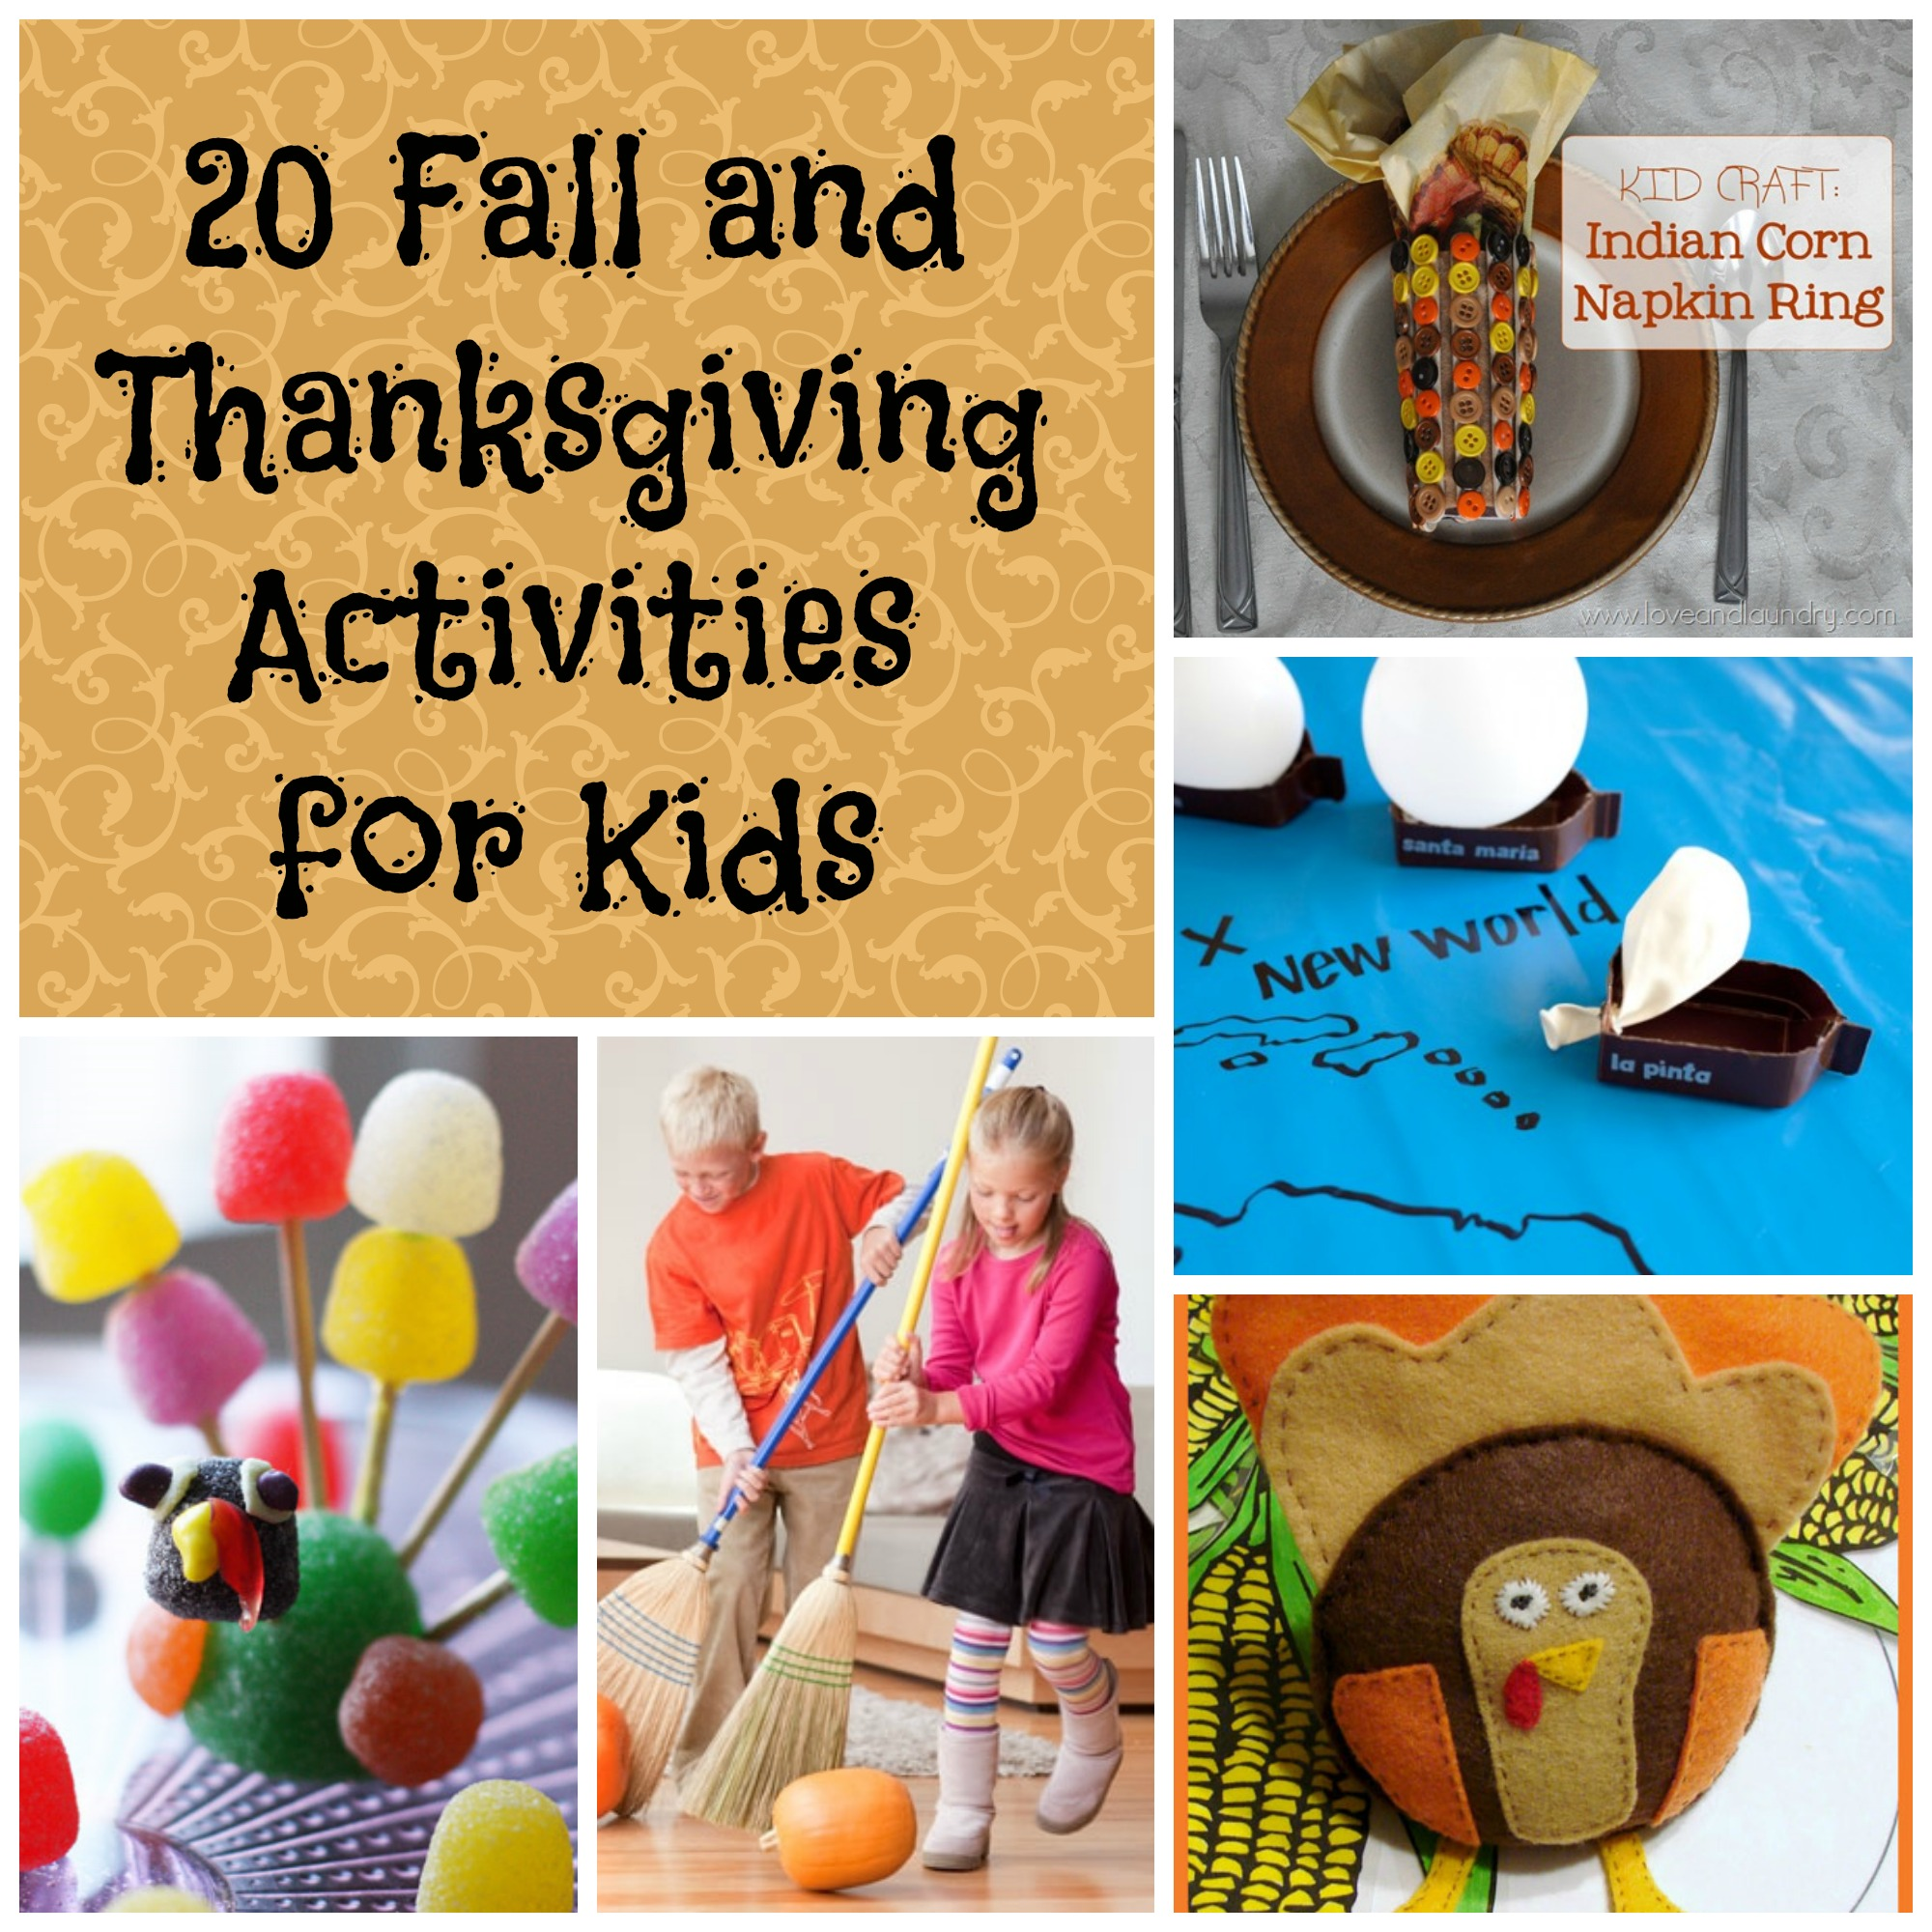 20 Fall and Thanksgiving Activities for Kids - Saving Cent by Cent